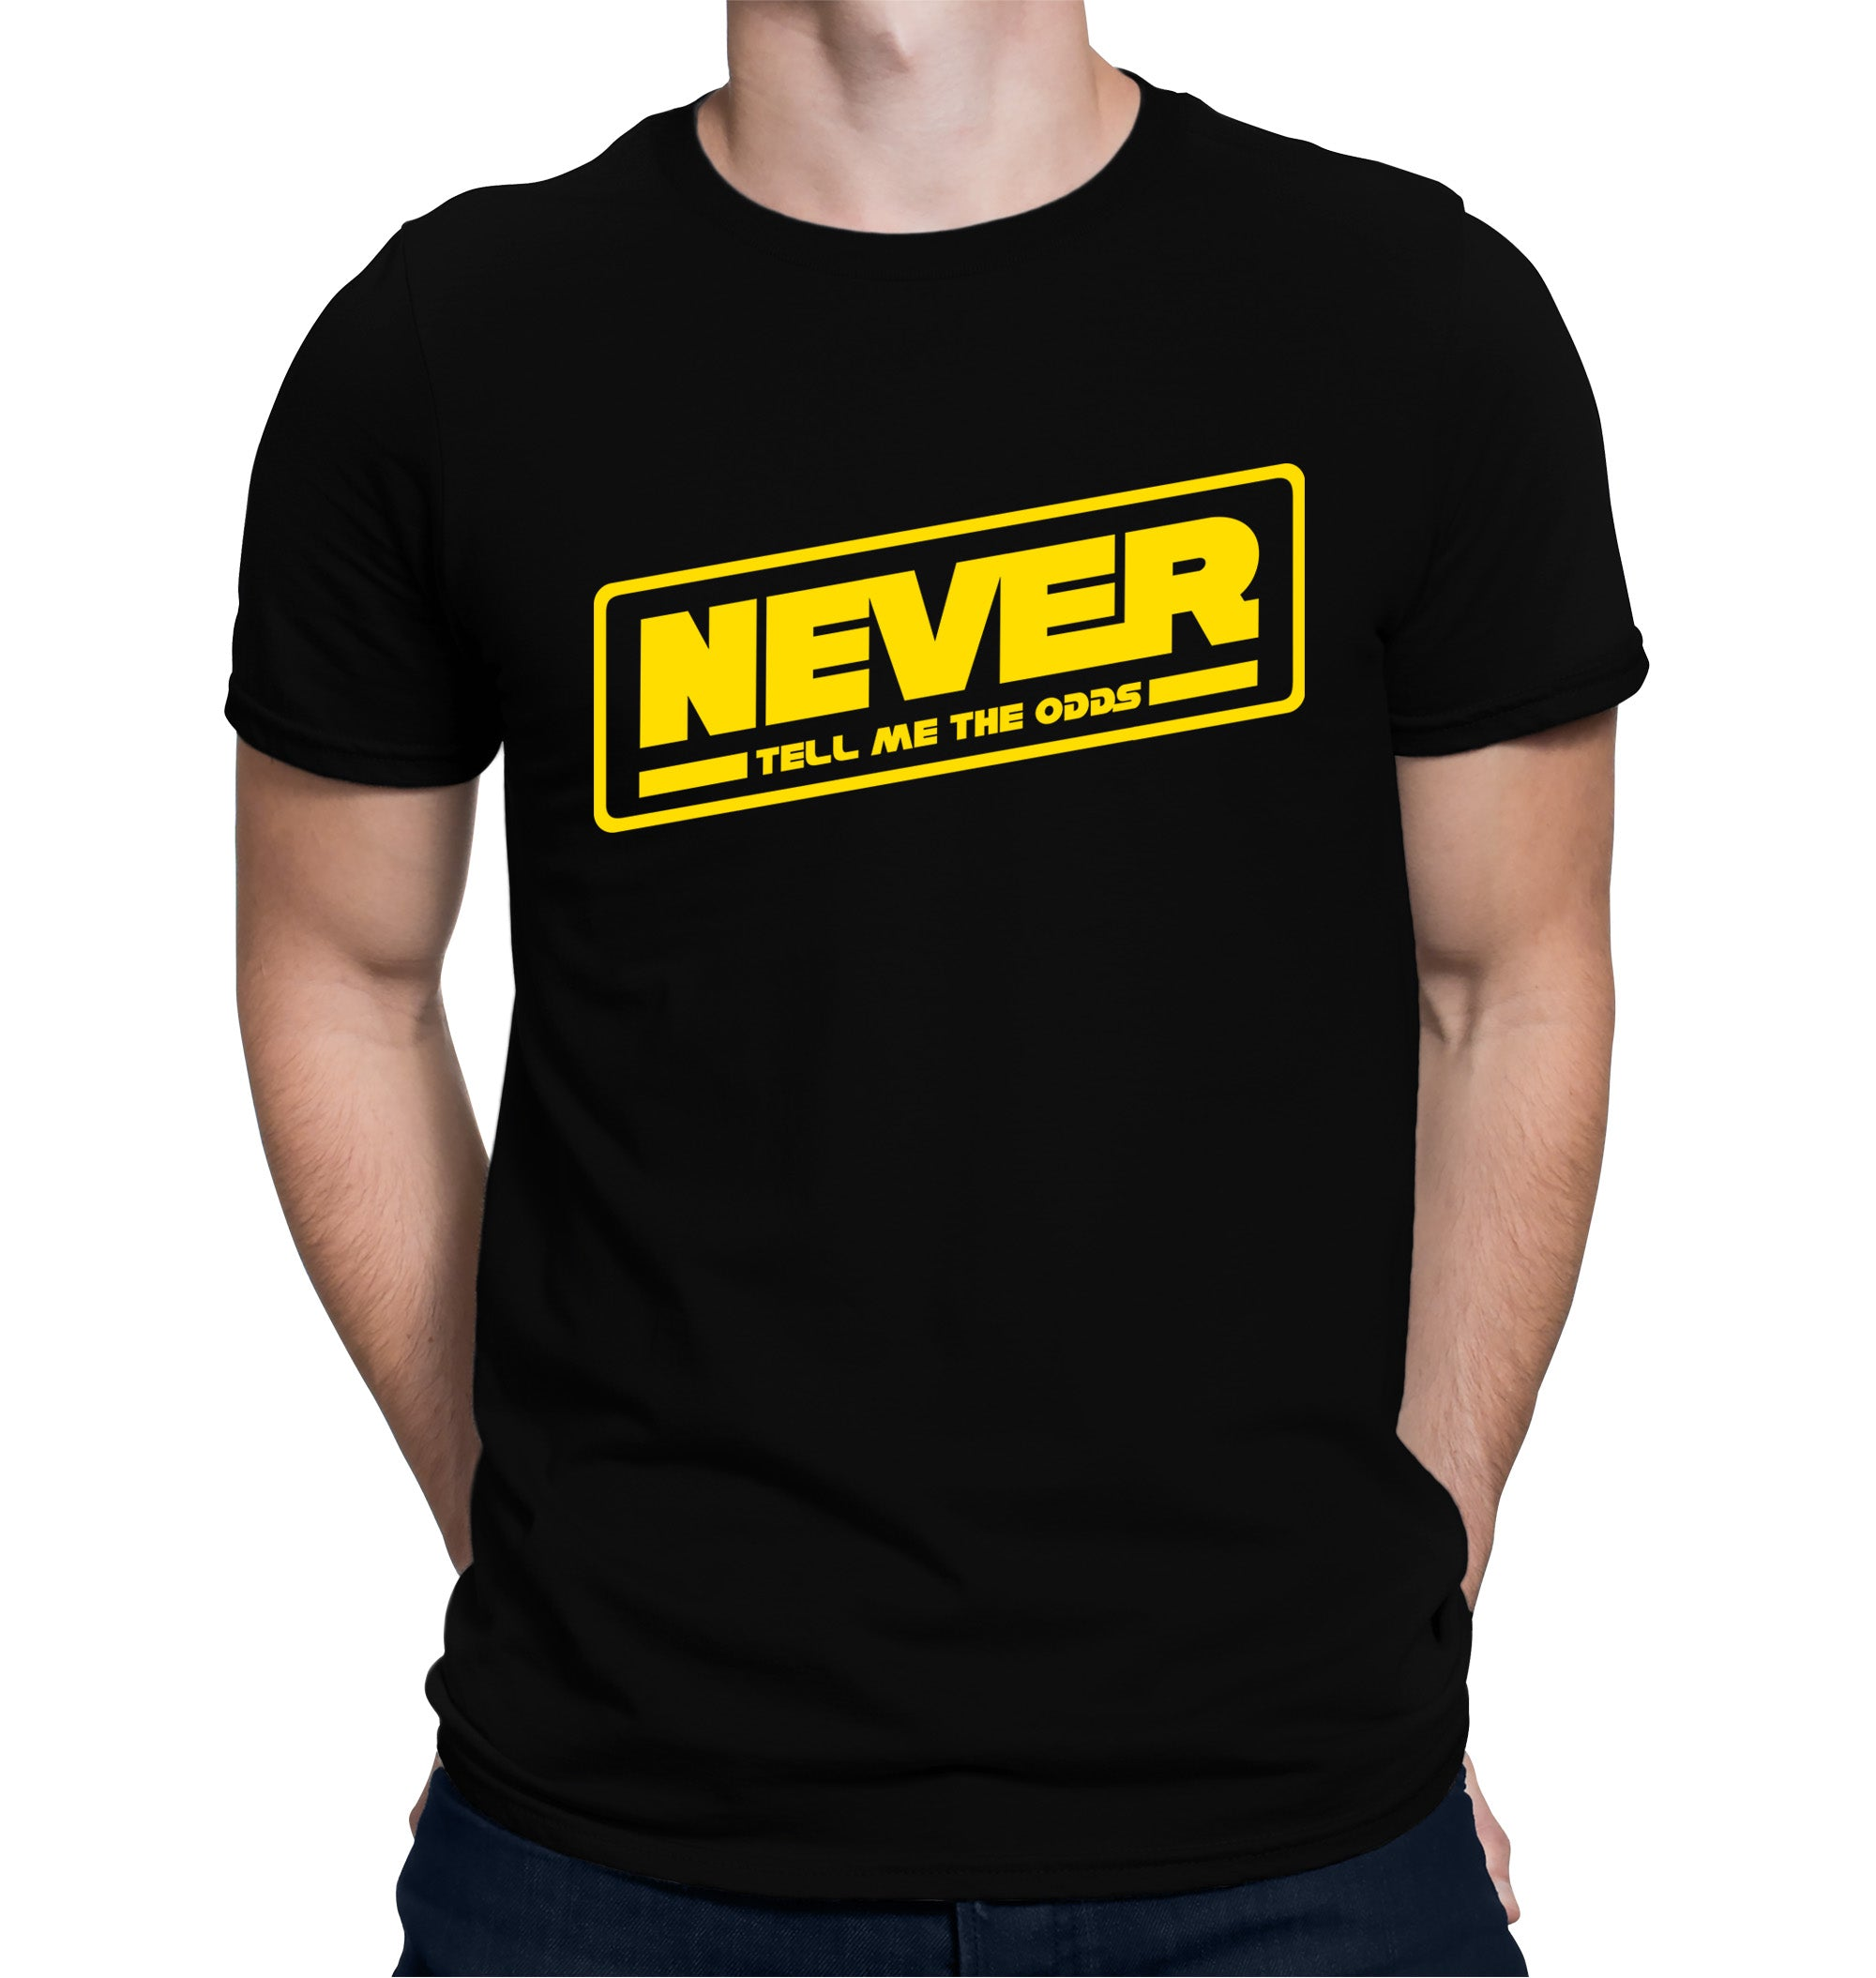 Never Tell Me the Odds T-Shirt on Model